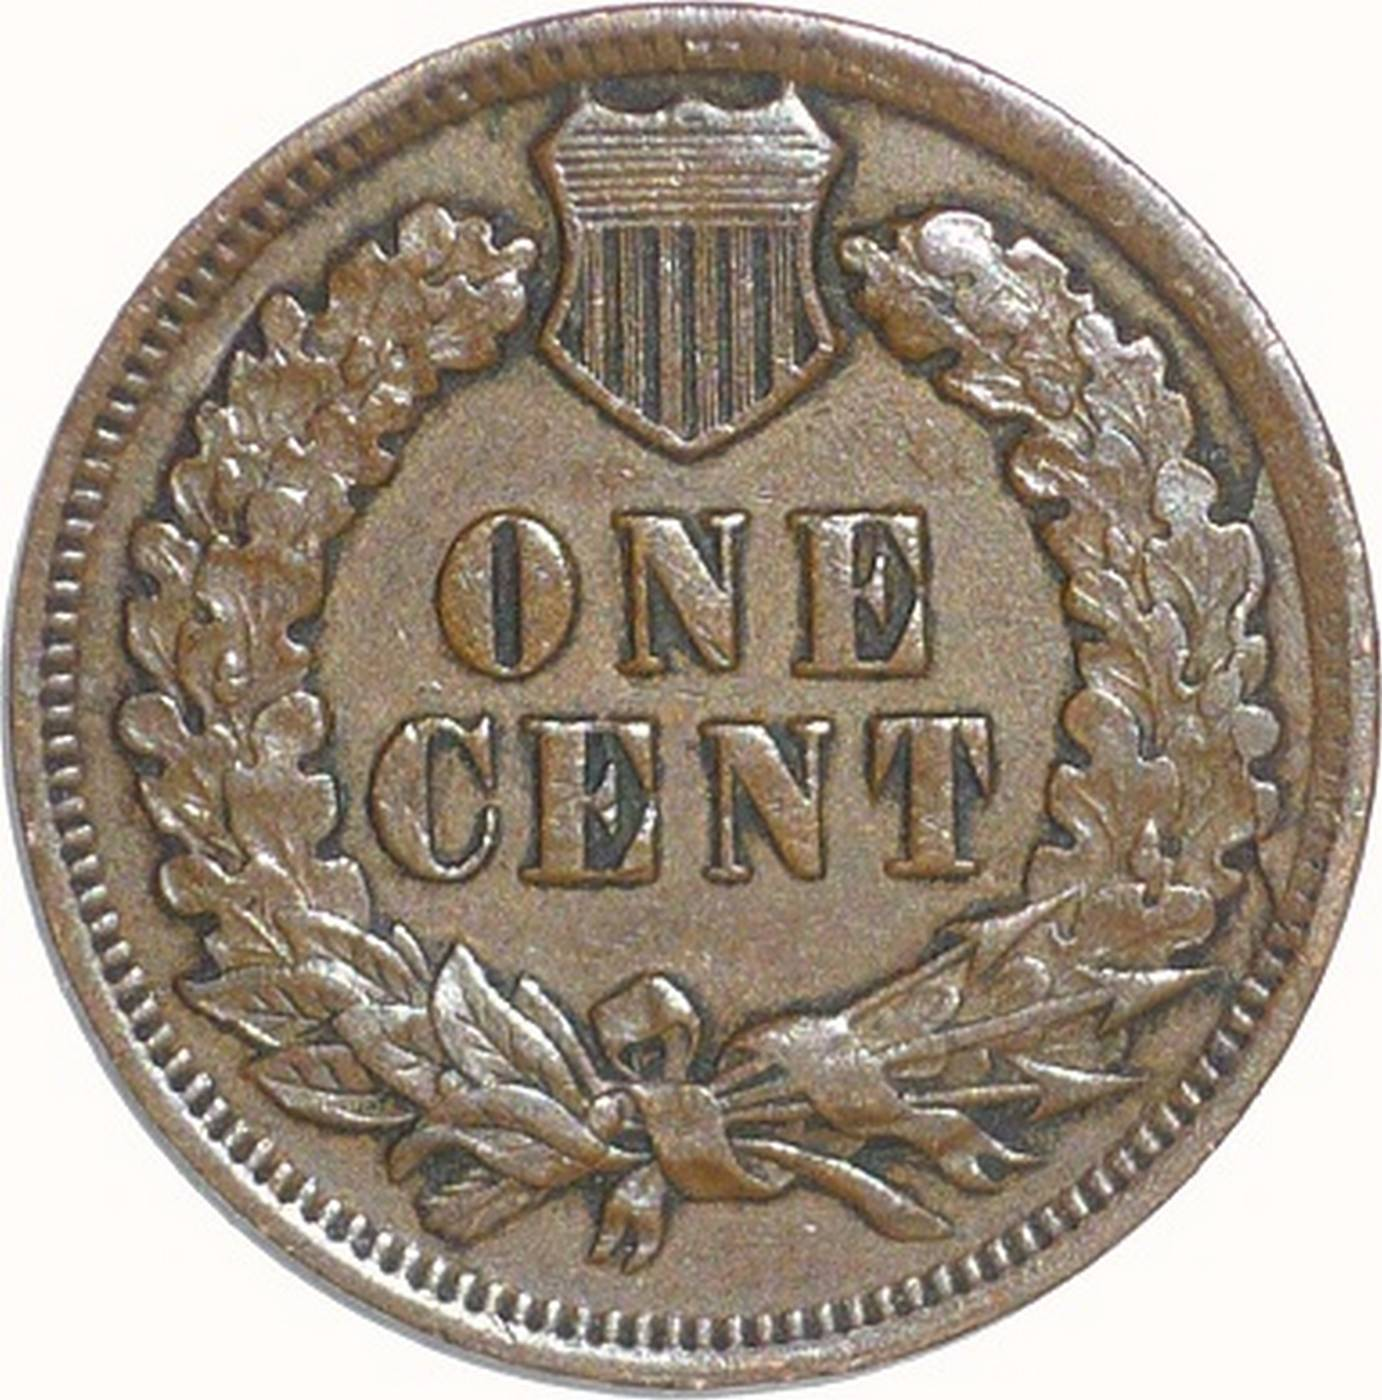 1902 CUD-001 - Indian Head Penny - Photo by David Poliquin